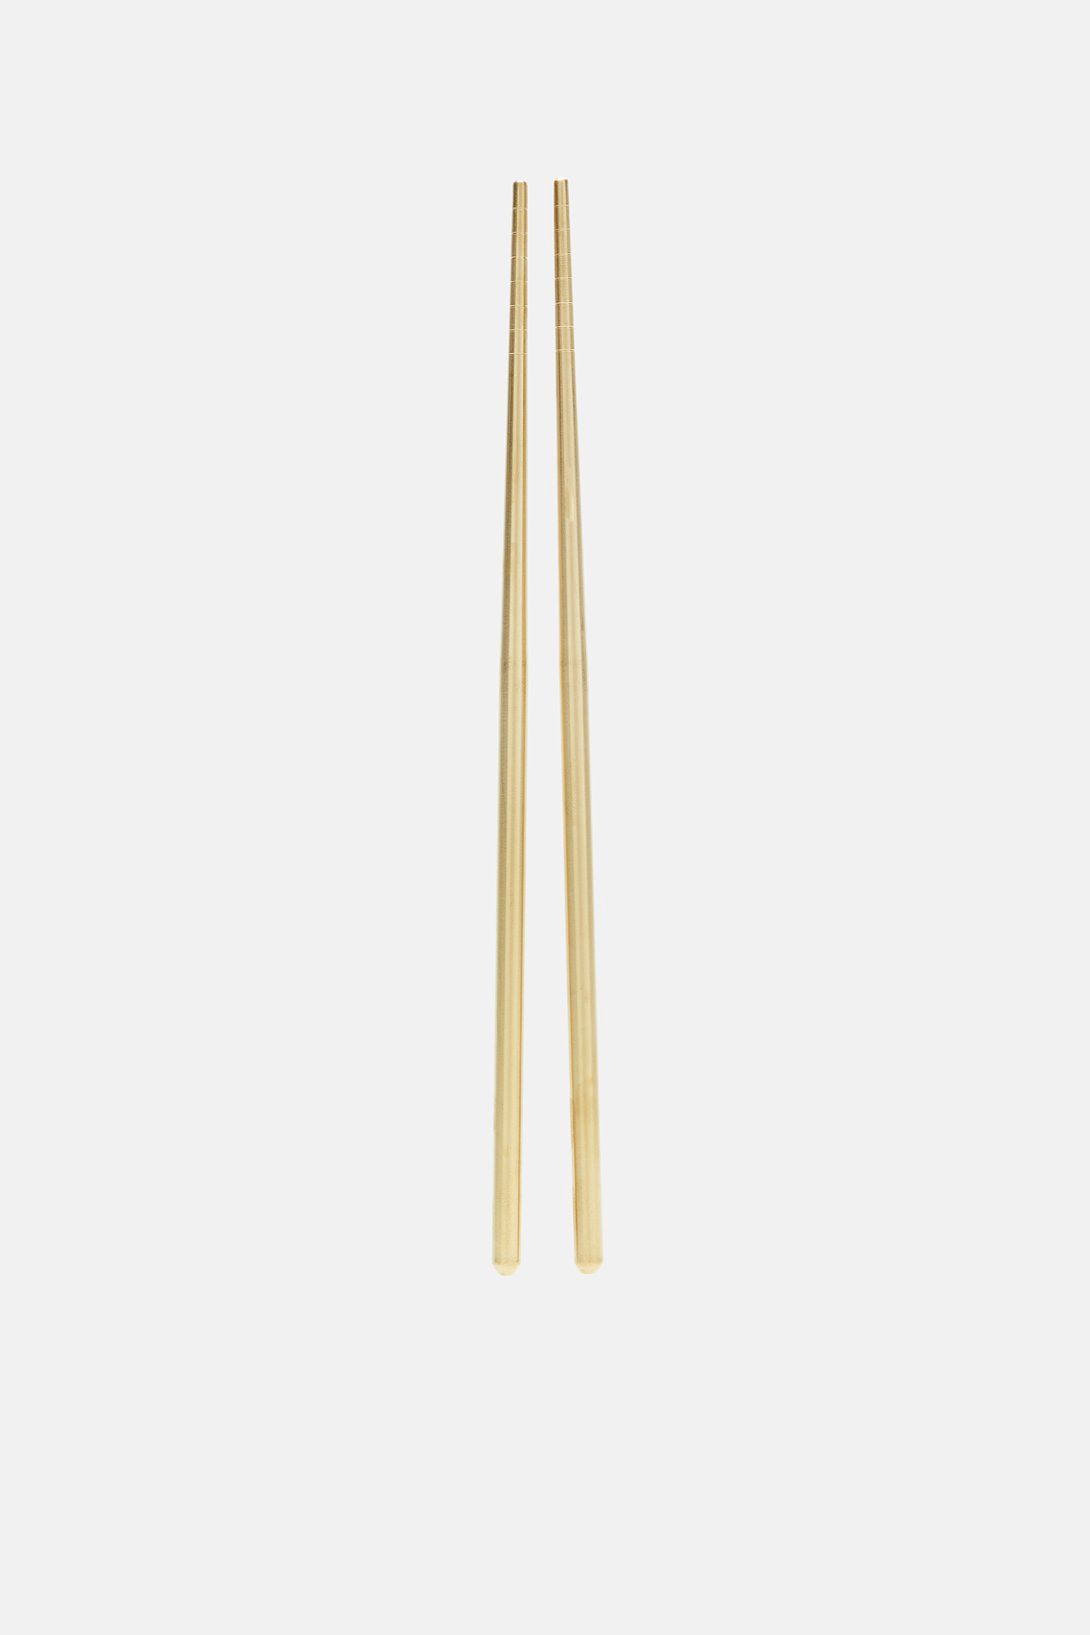 gold chopsticks